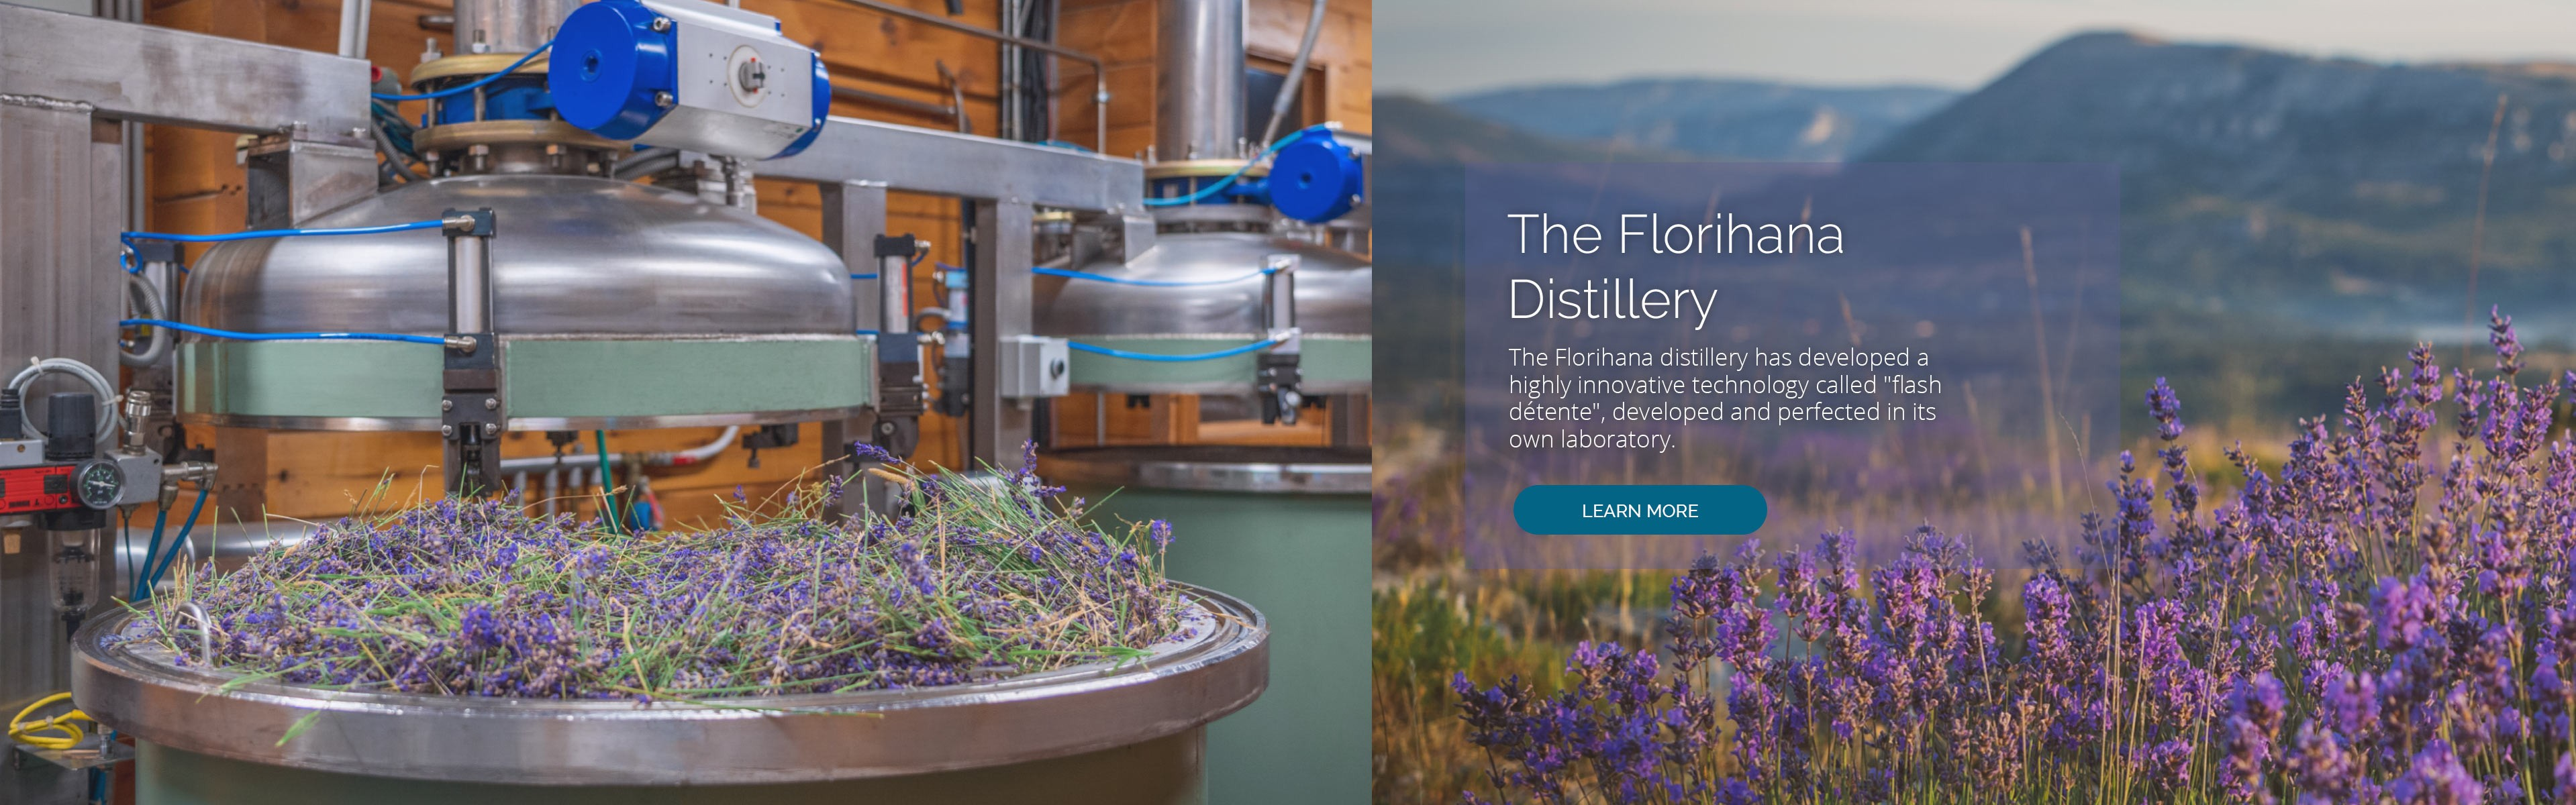 """The Florihana distillery has developed a highly innovative technology called """"flash détente"""", developed and perfected in its own laboratory."""